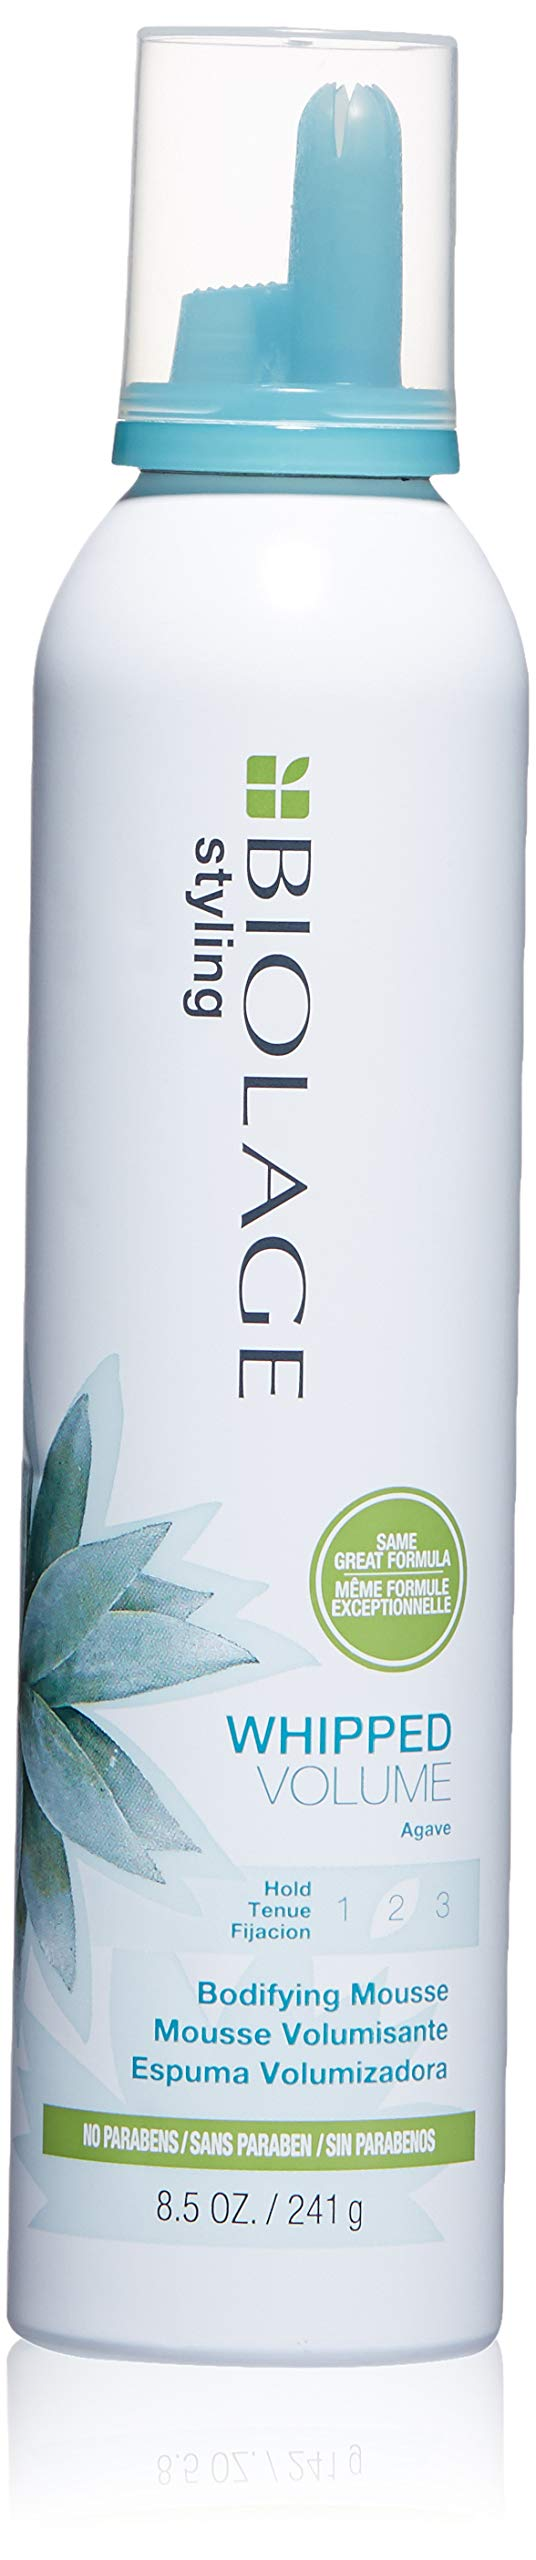 BIOLAGE Styling Whipped Volume Mousse, 8.5 Oz by BIOLAGE